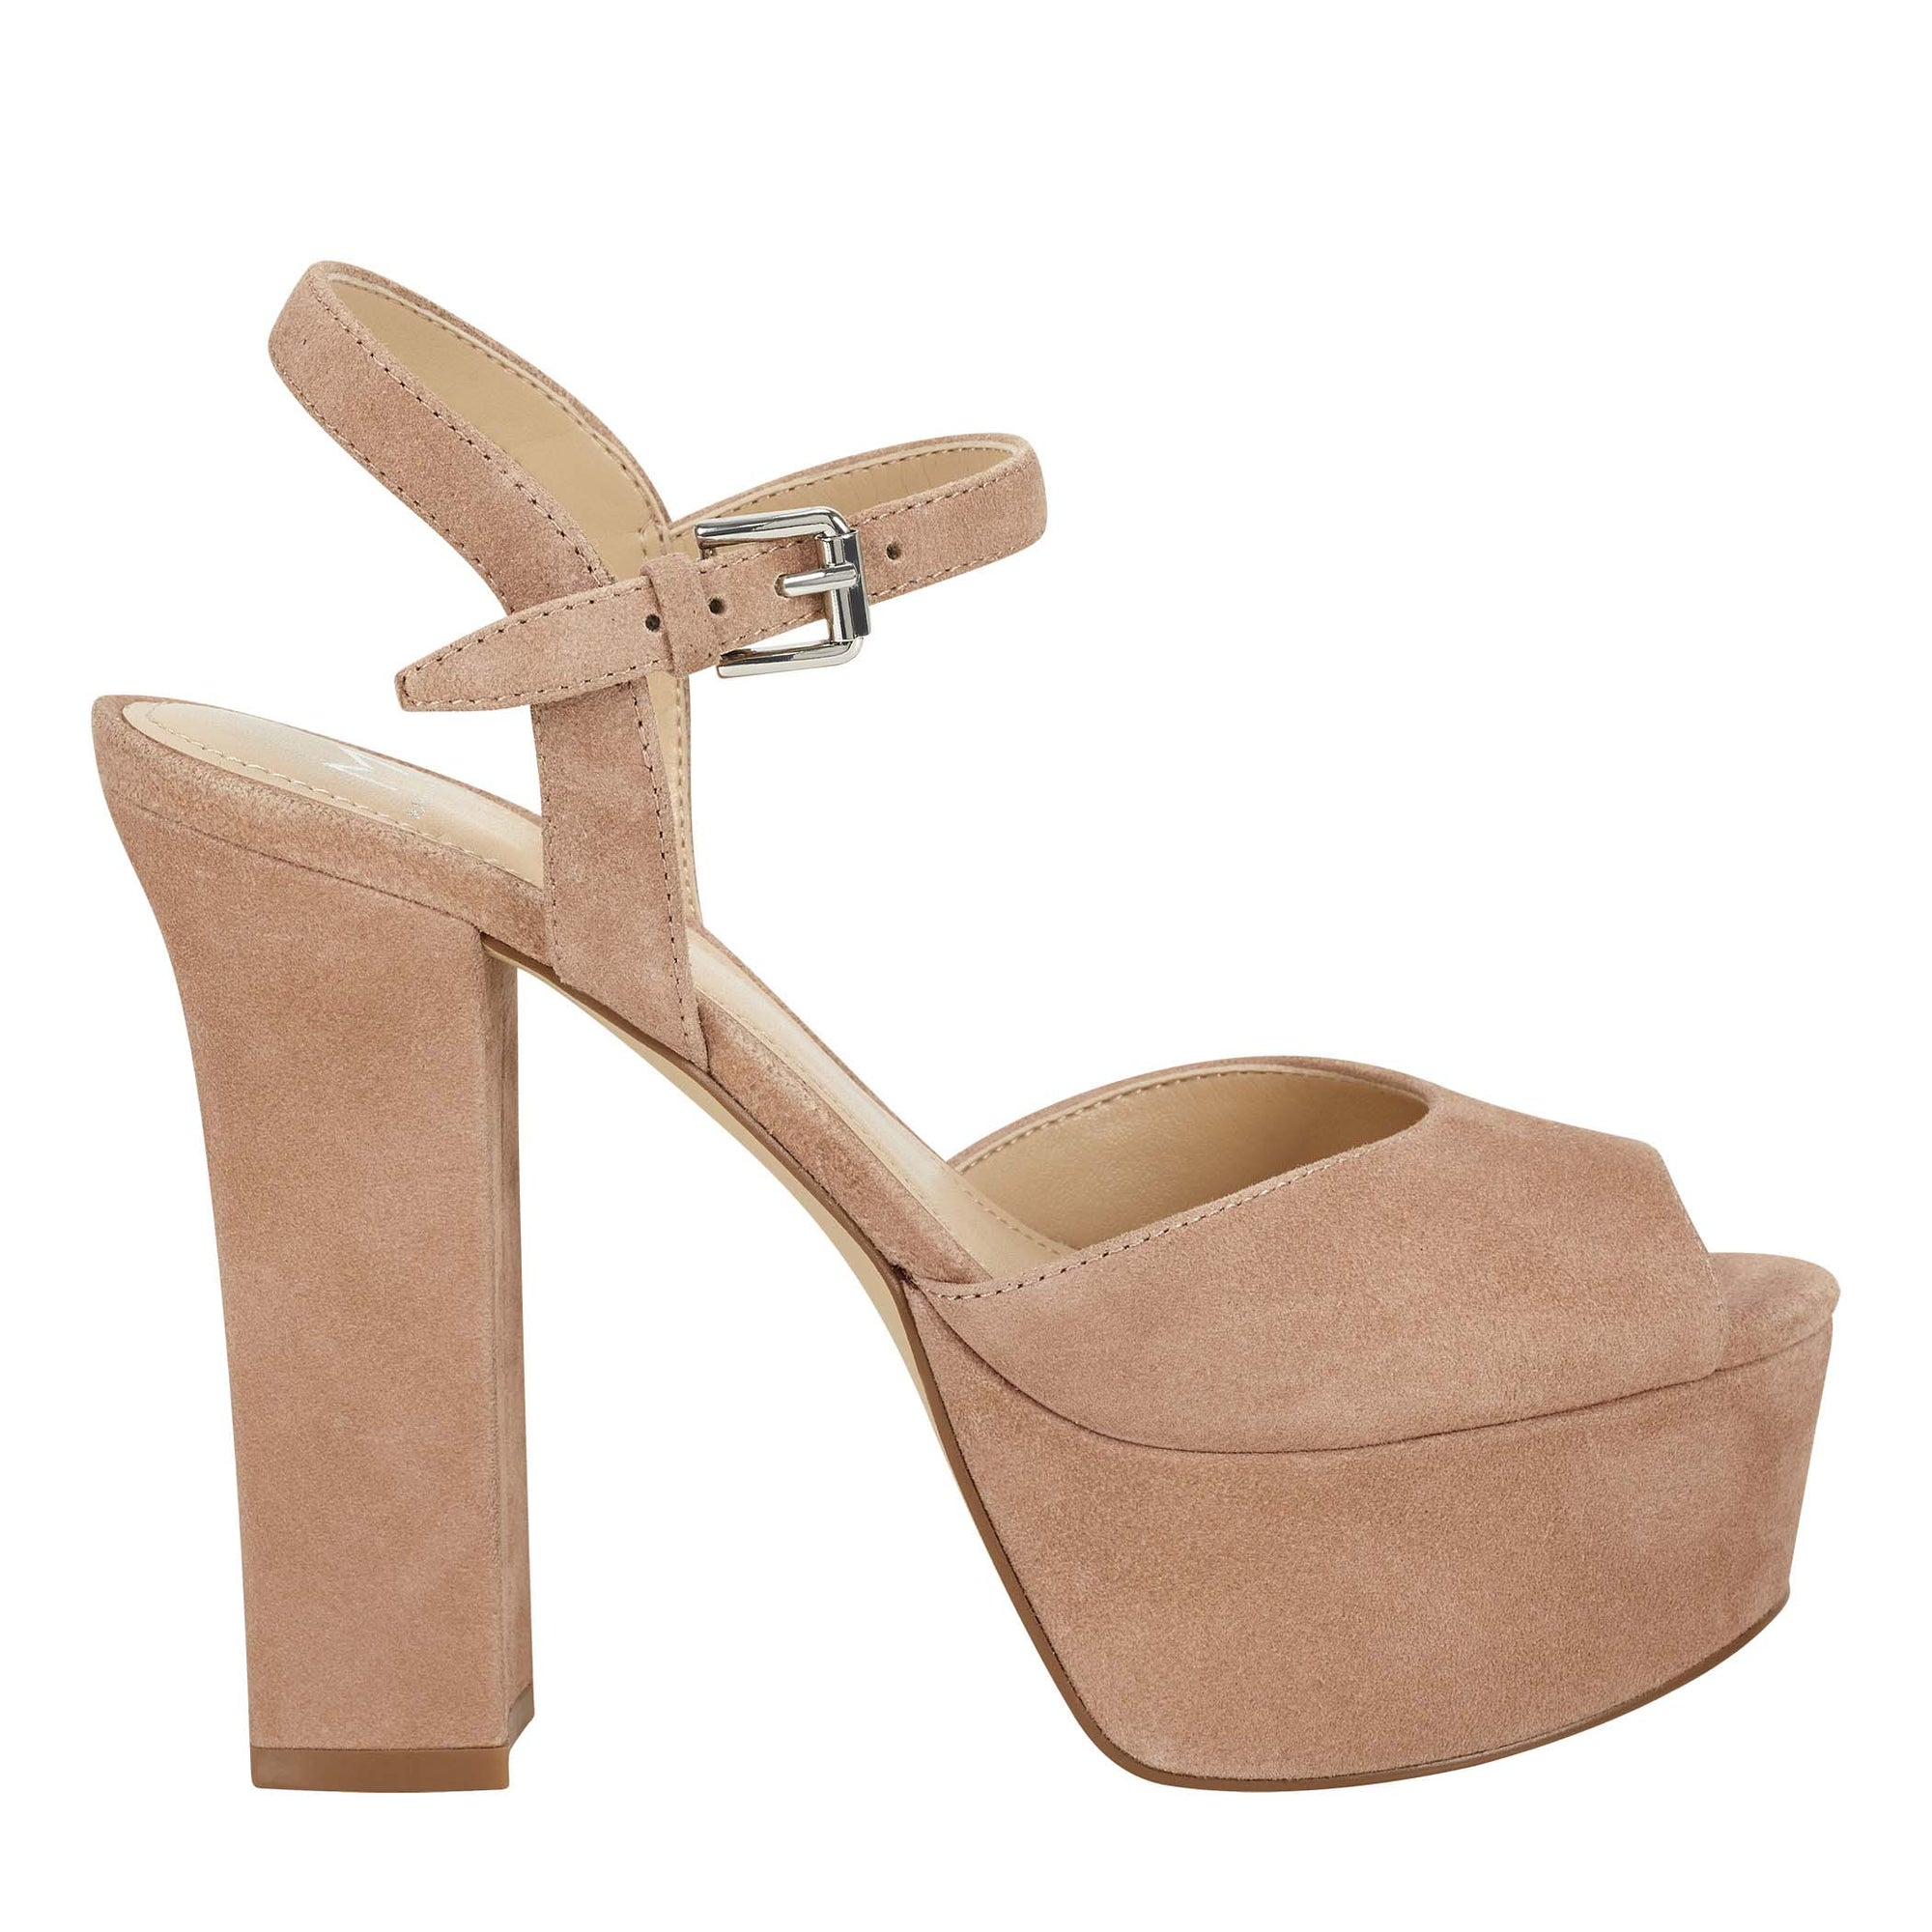 stacey-platform-sandal-in-natural-suede